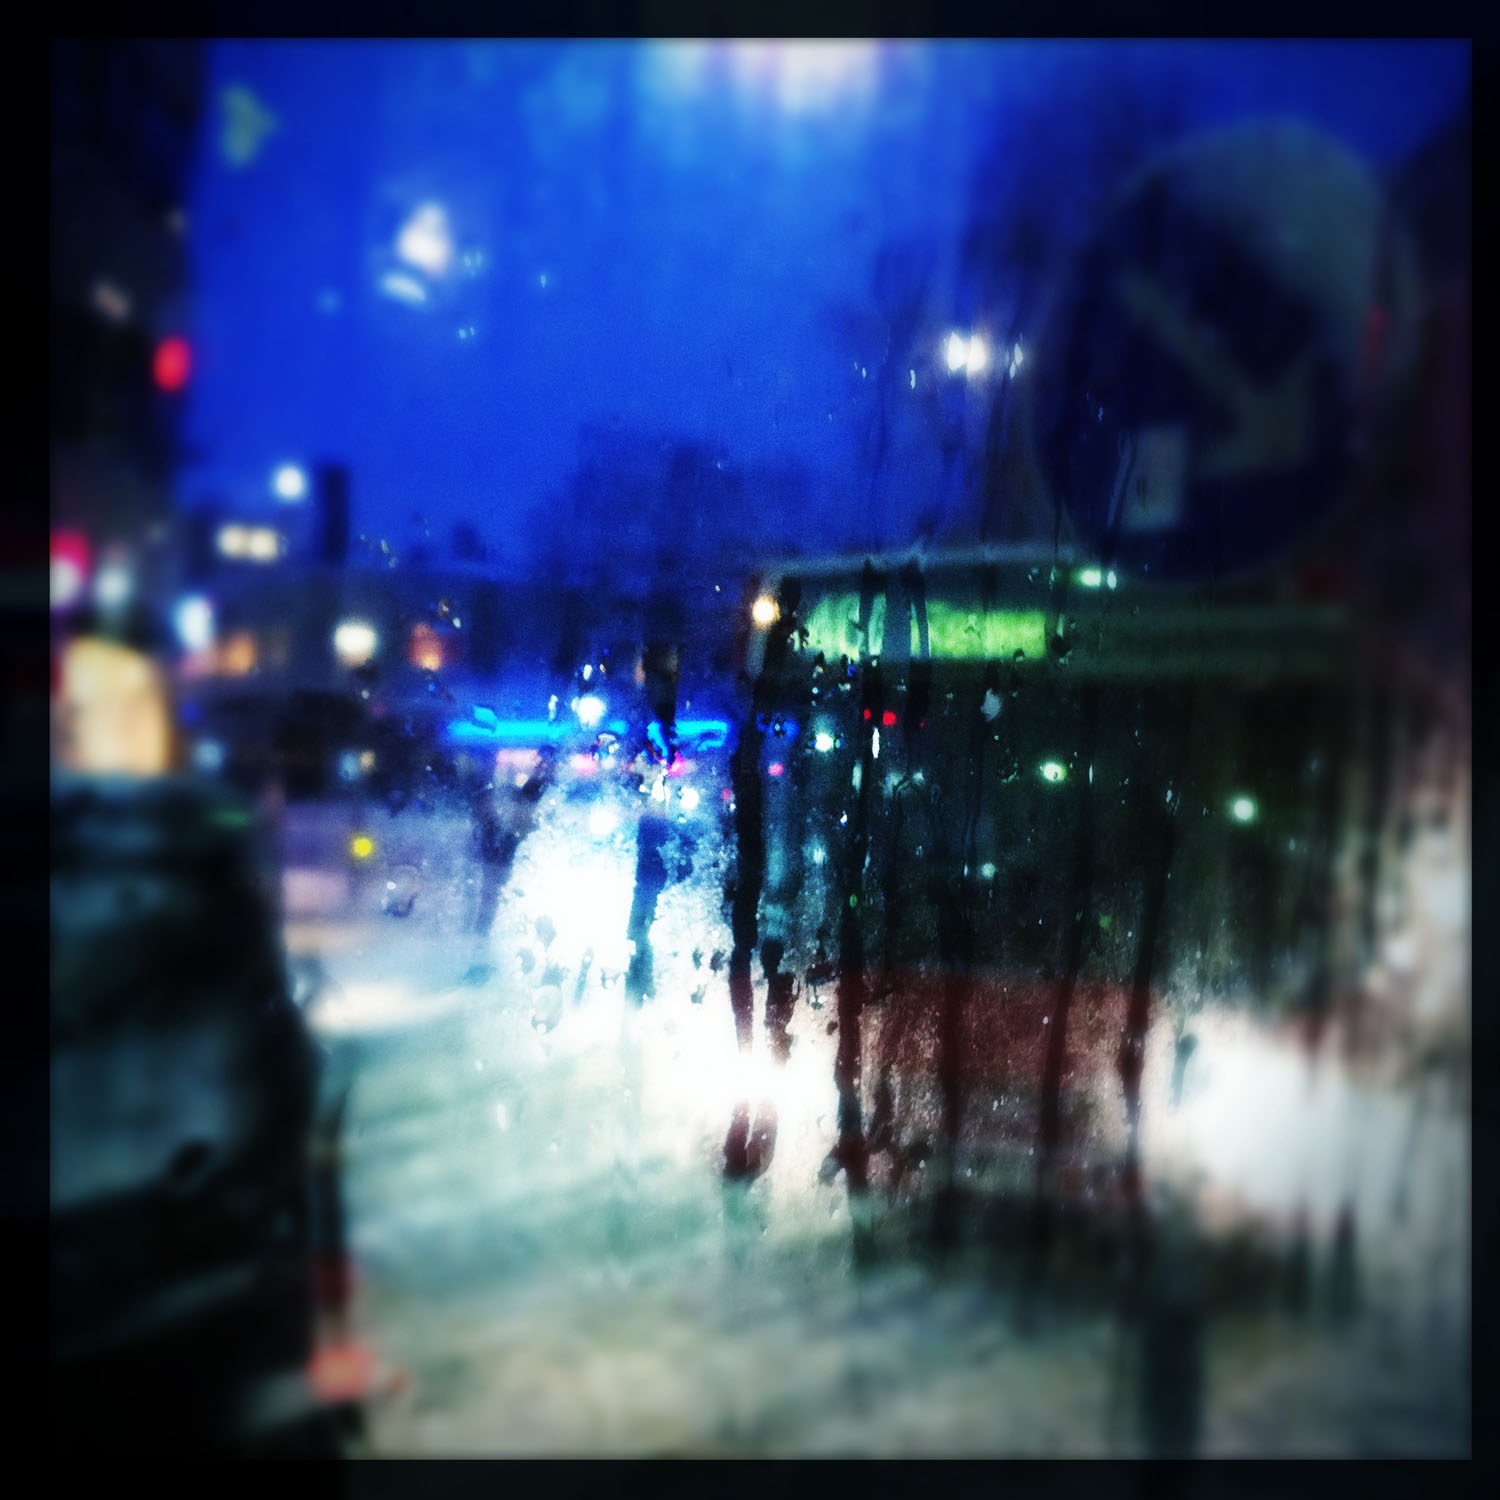 iPhone photo: bus in snow